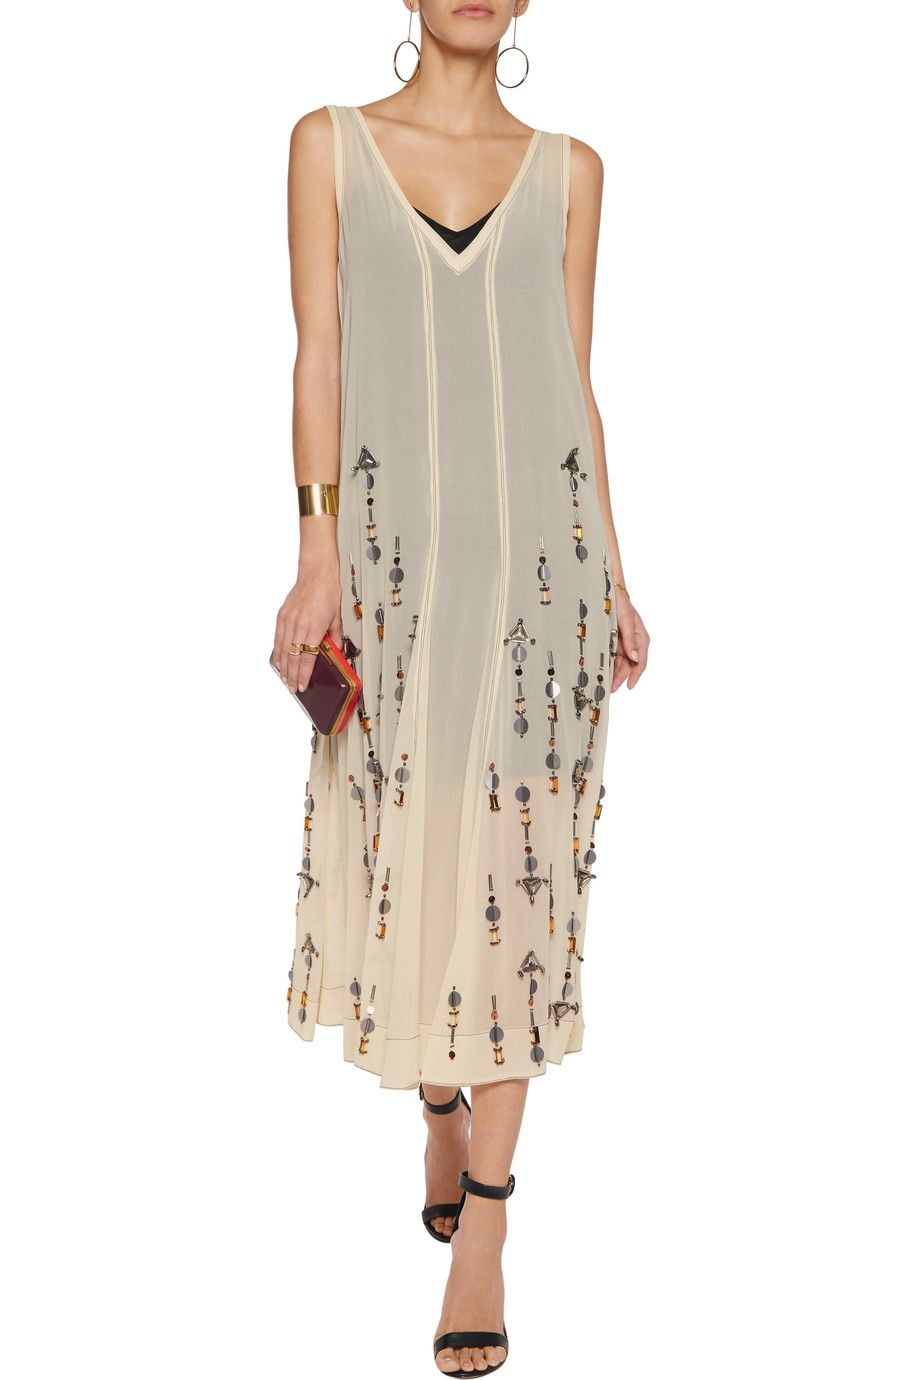 5a903c603c Shop on-sale By Malene Birger Gretas sequined chiffon midi dress . Browse  other discount designer Dresses   more on The Most Fashionable Fashion  Outlet